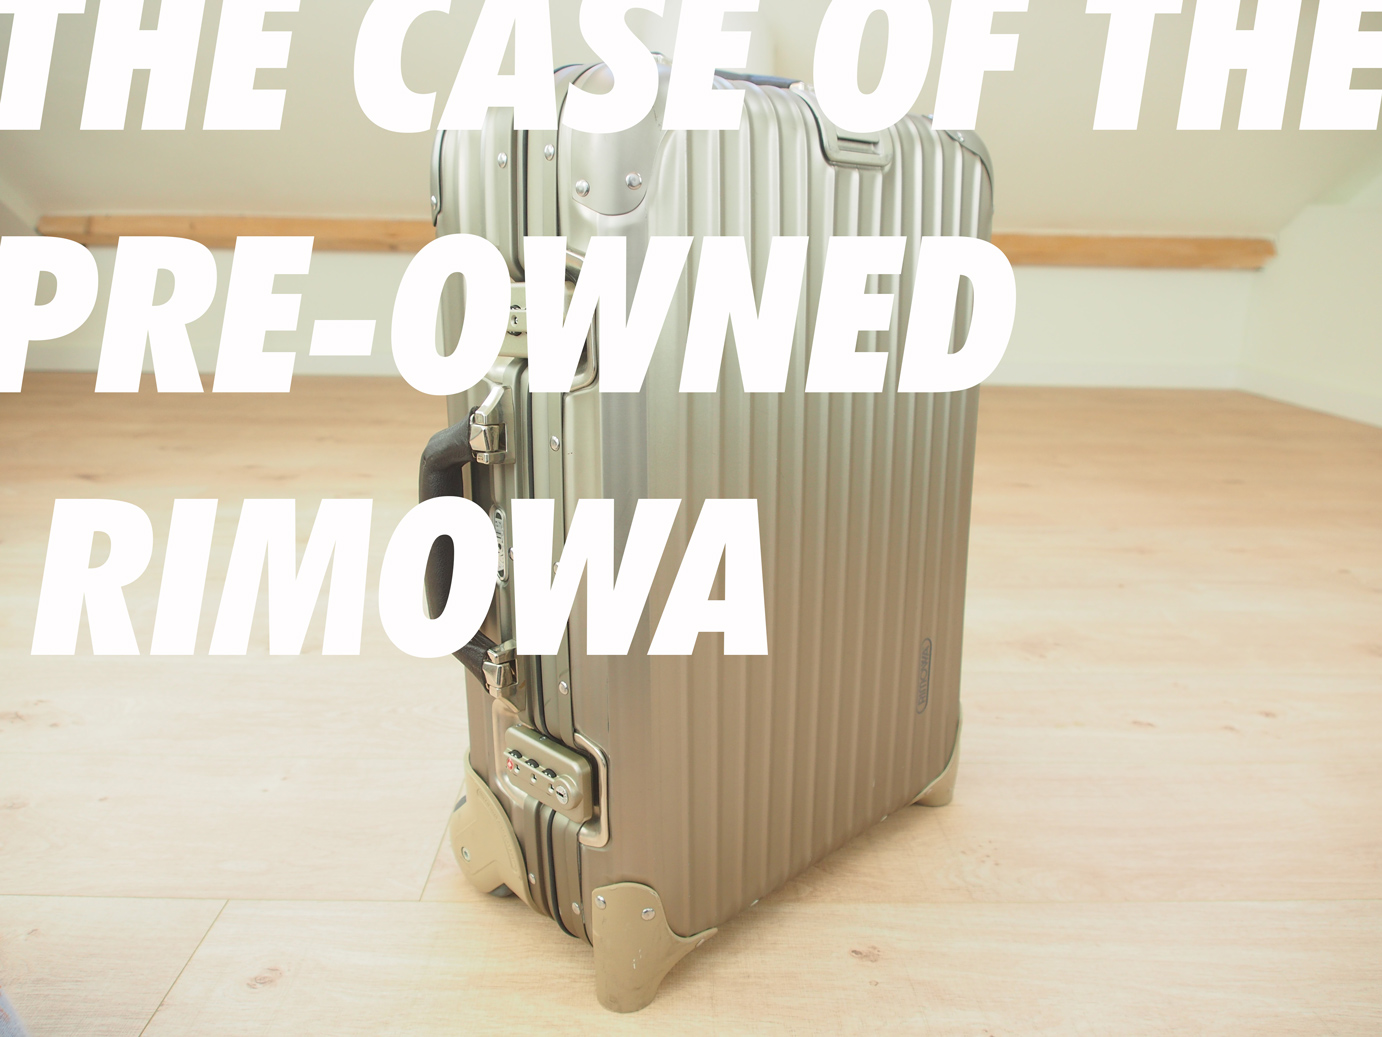 The-case-of-the-pre-owned-Rimowa